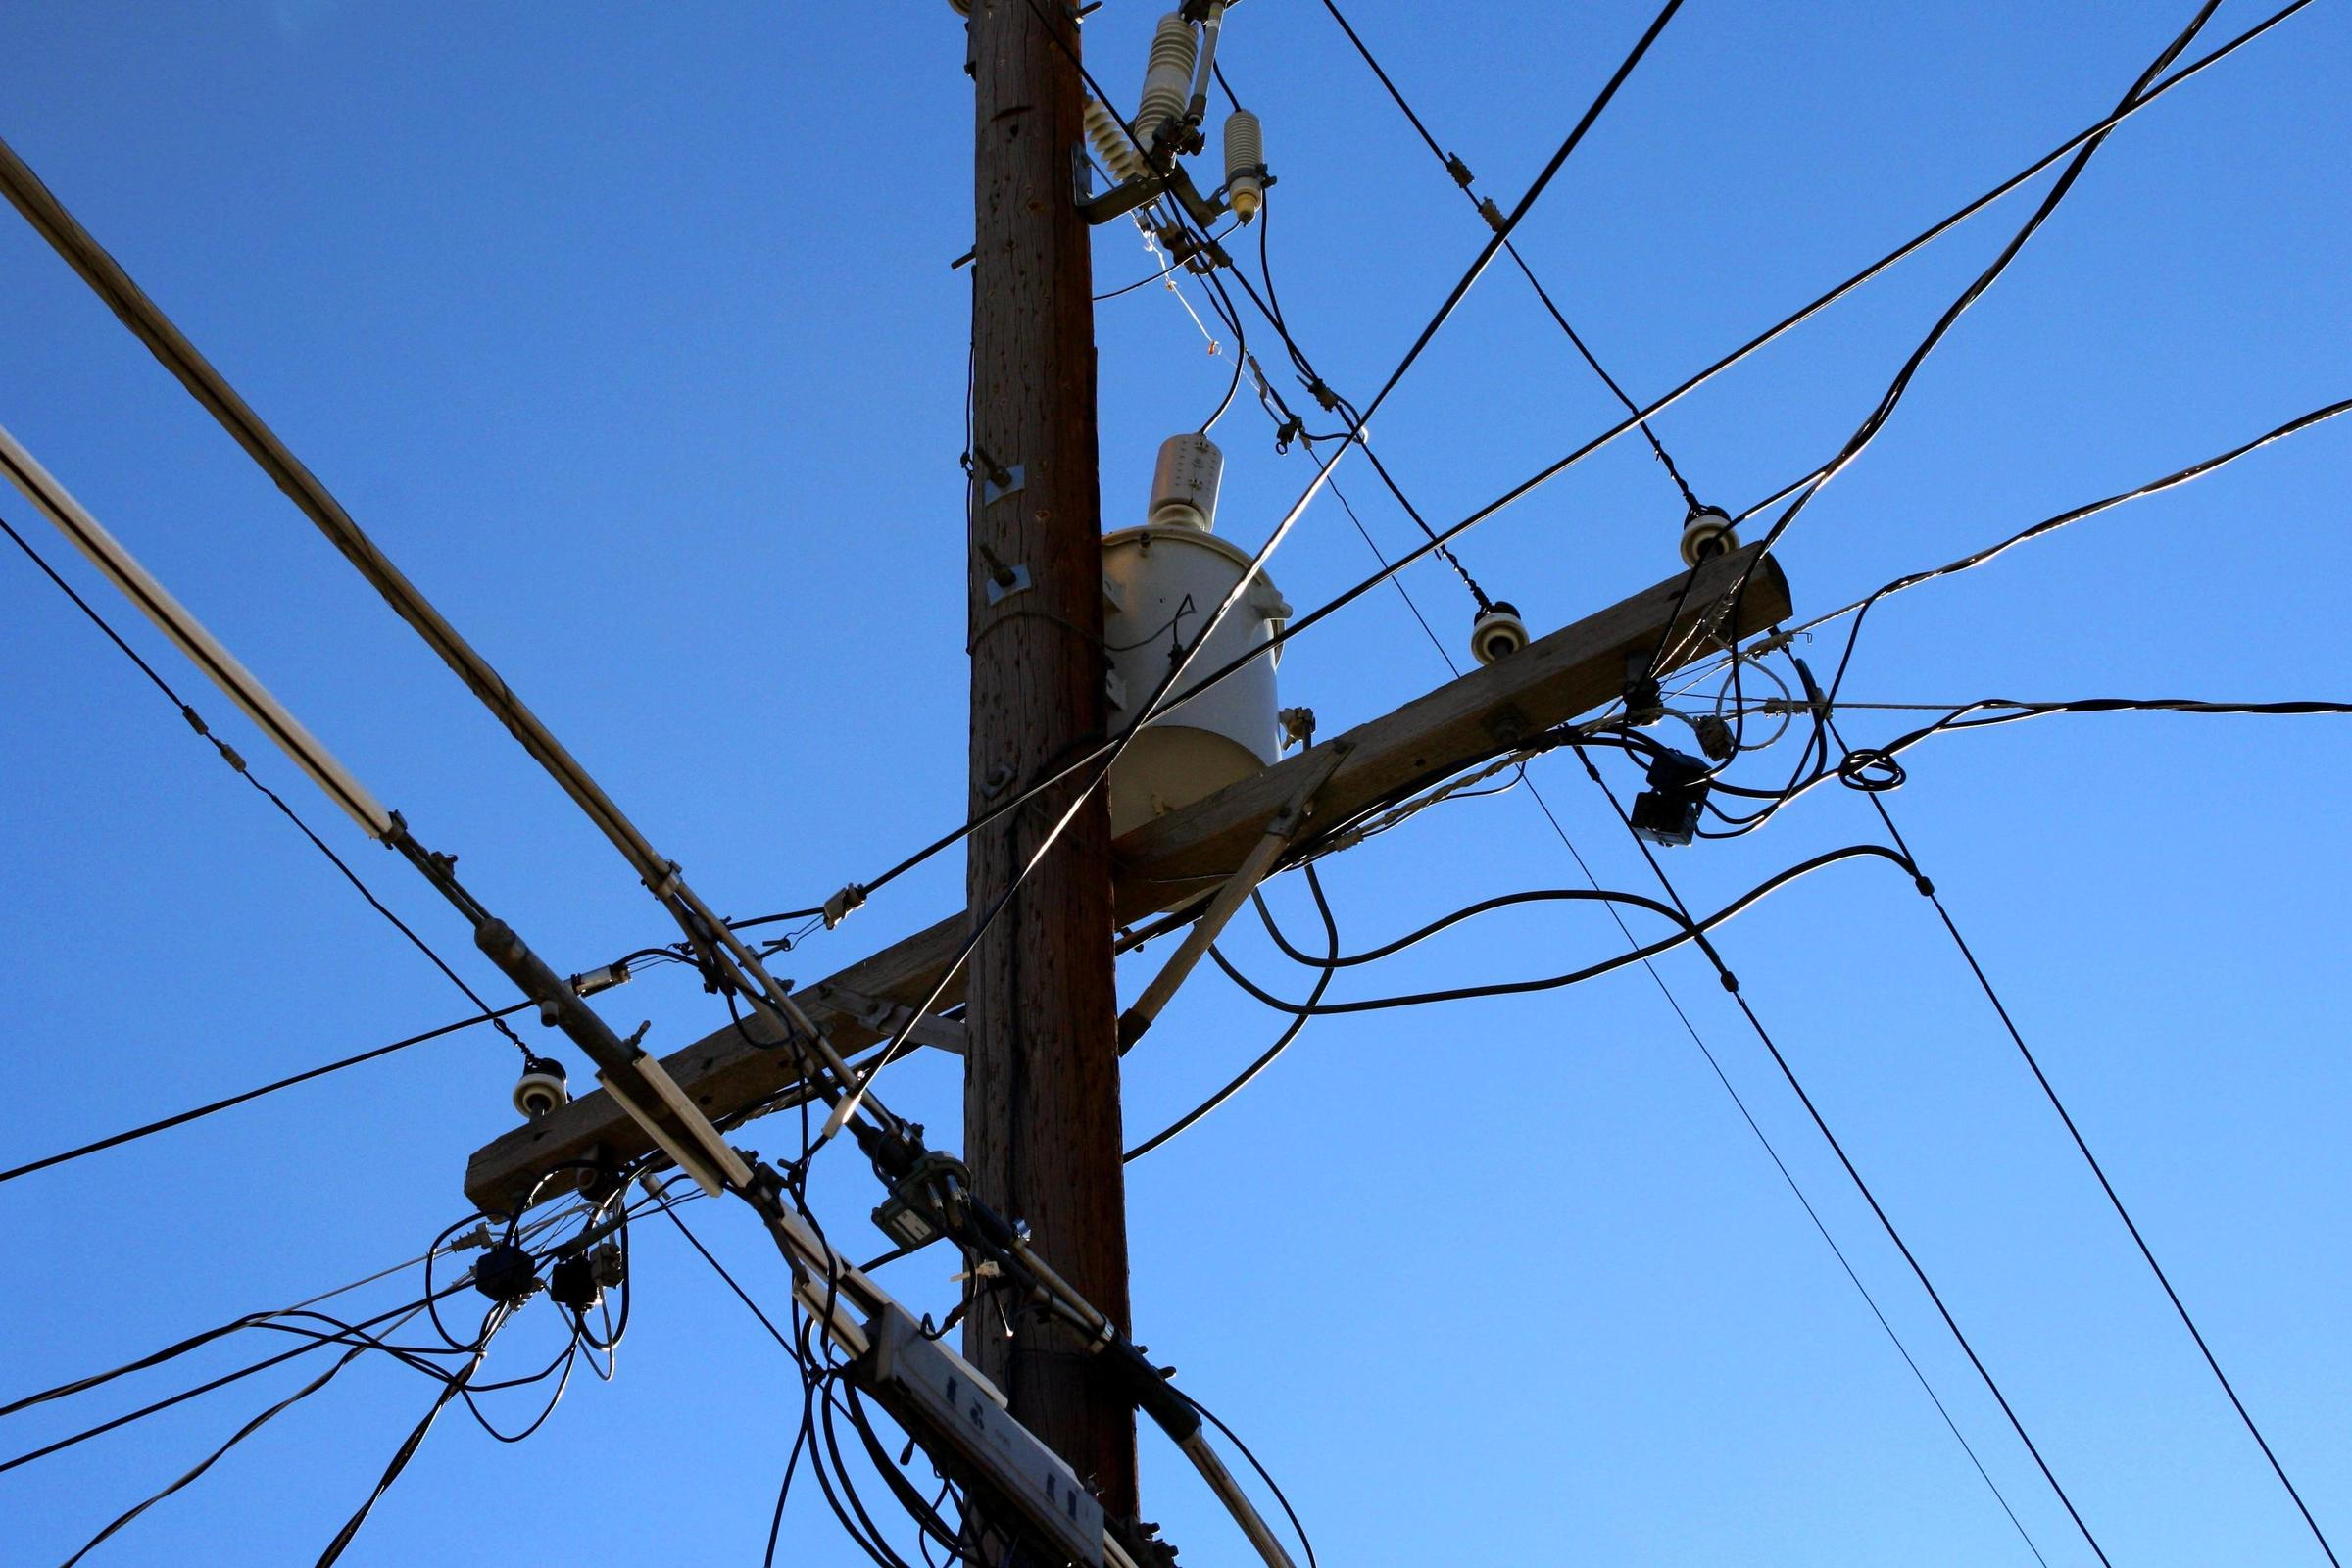 Puerto Rico Power Outages Lead To Local Electric Company Questions Electrical Wiring Terminology